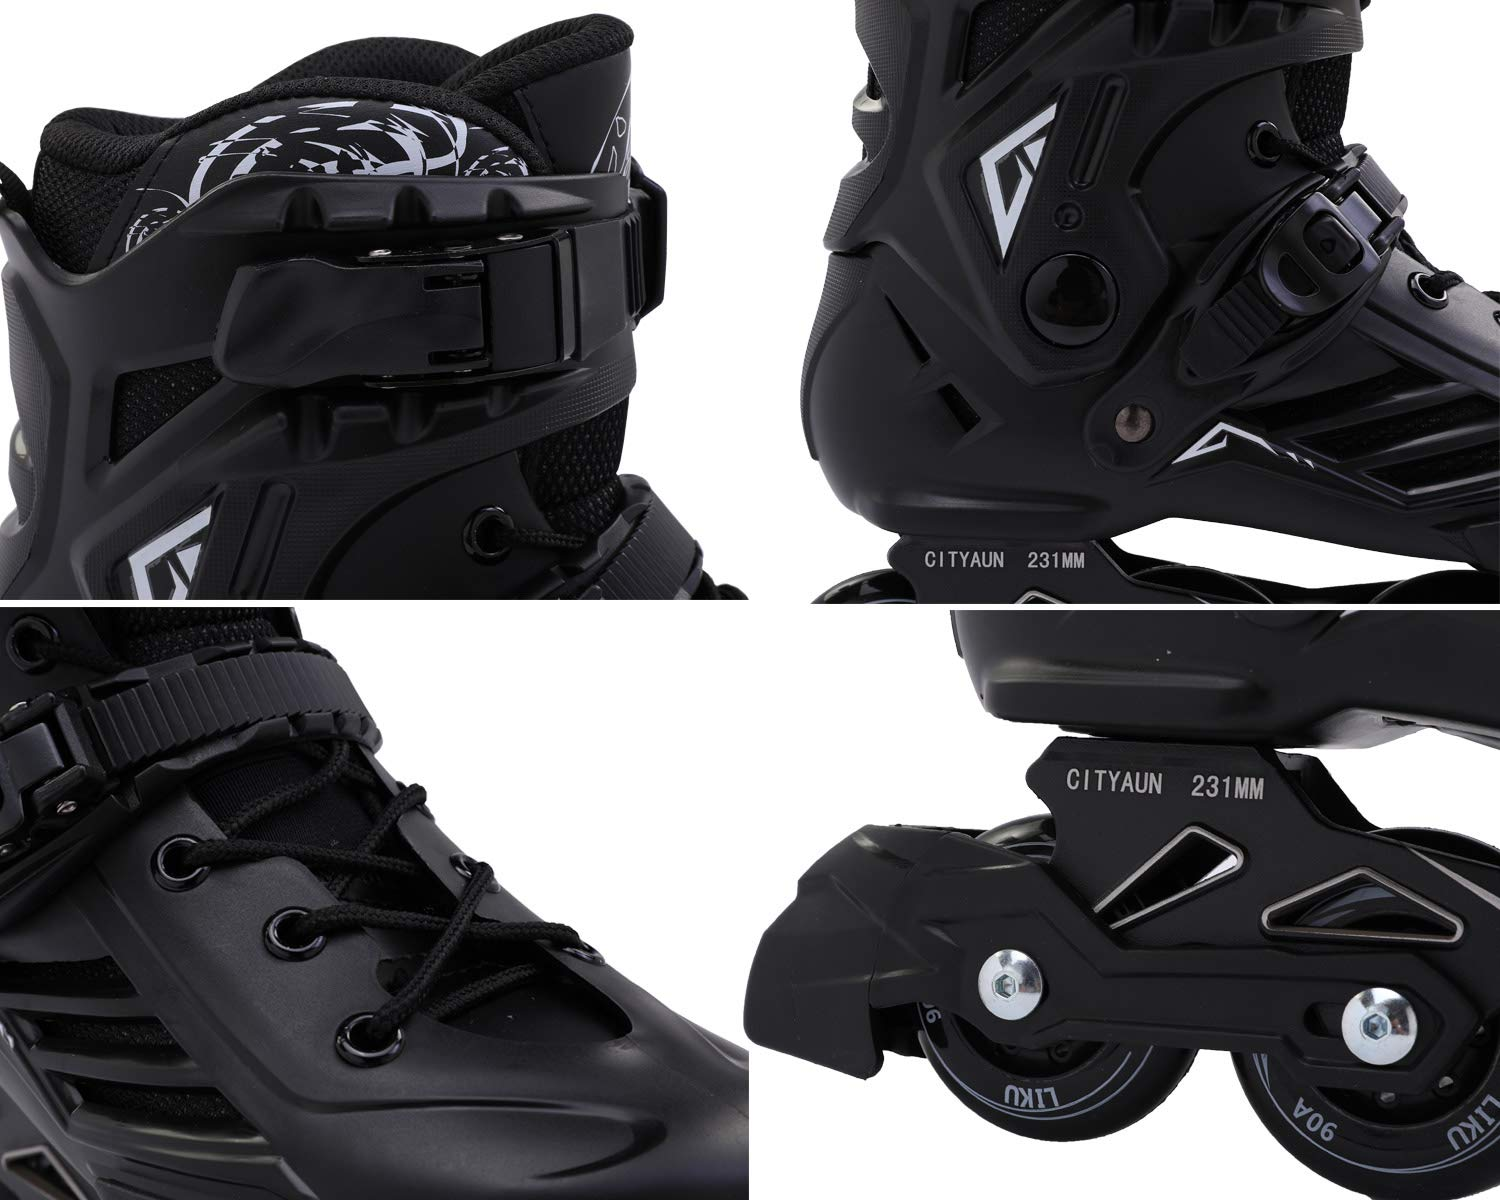 LIKU Fitness Professional Inline Roller Skates Women Men Adult Youth Black (Men 6.5,Women 7.5) by LIKU (Image #6)